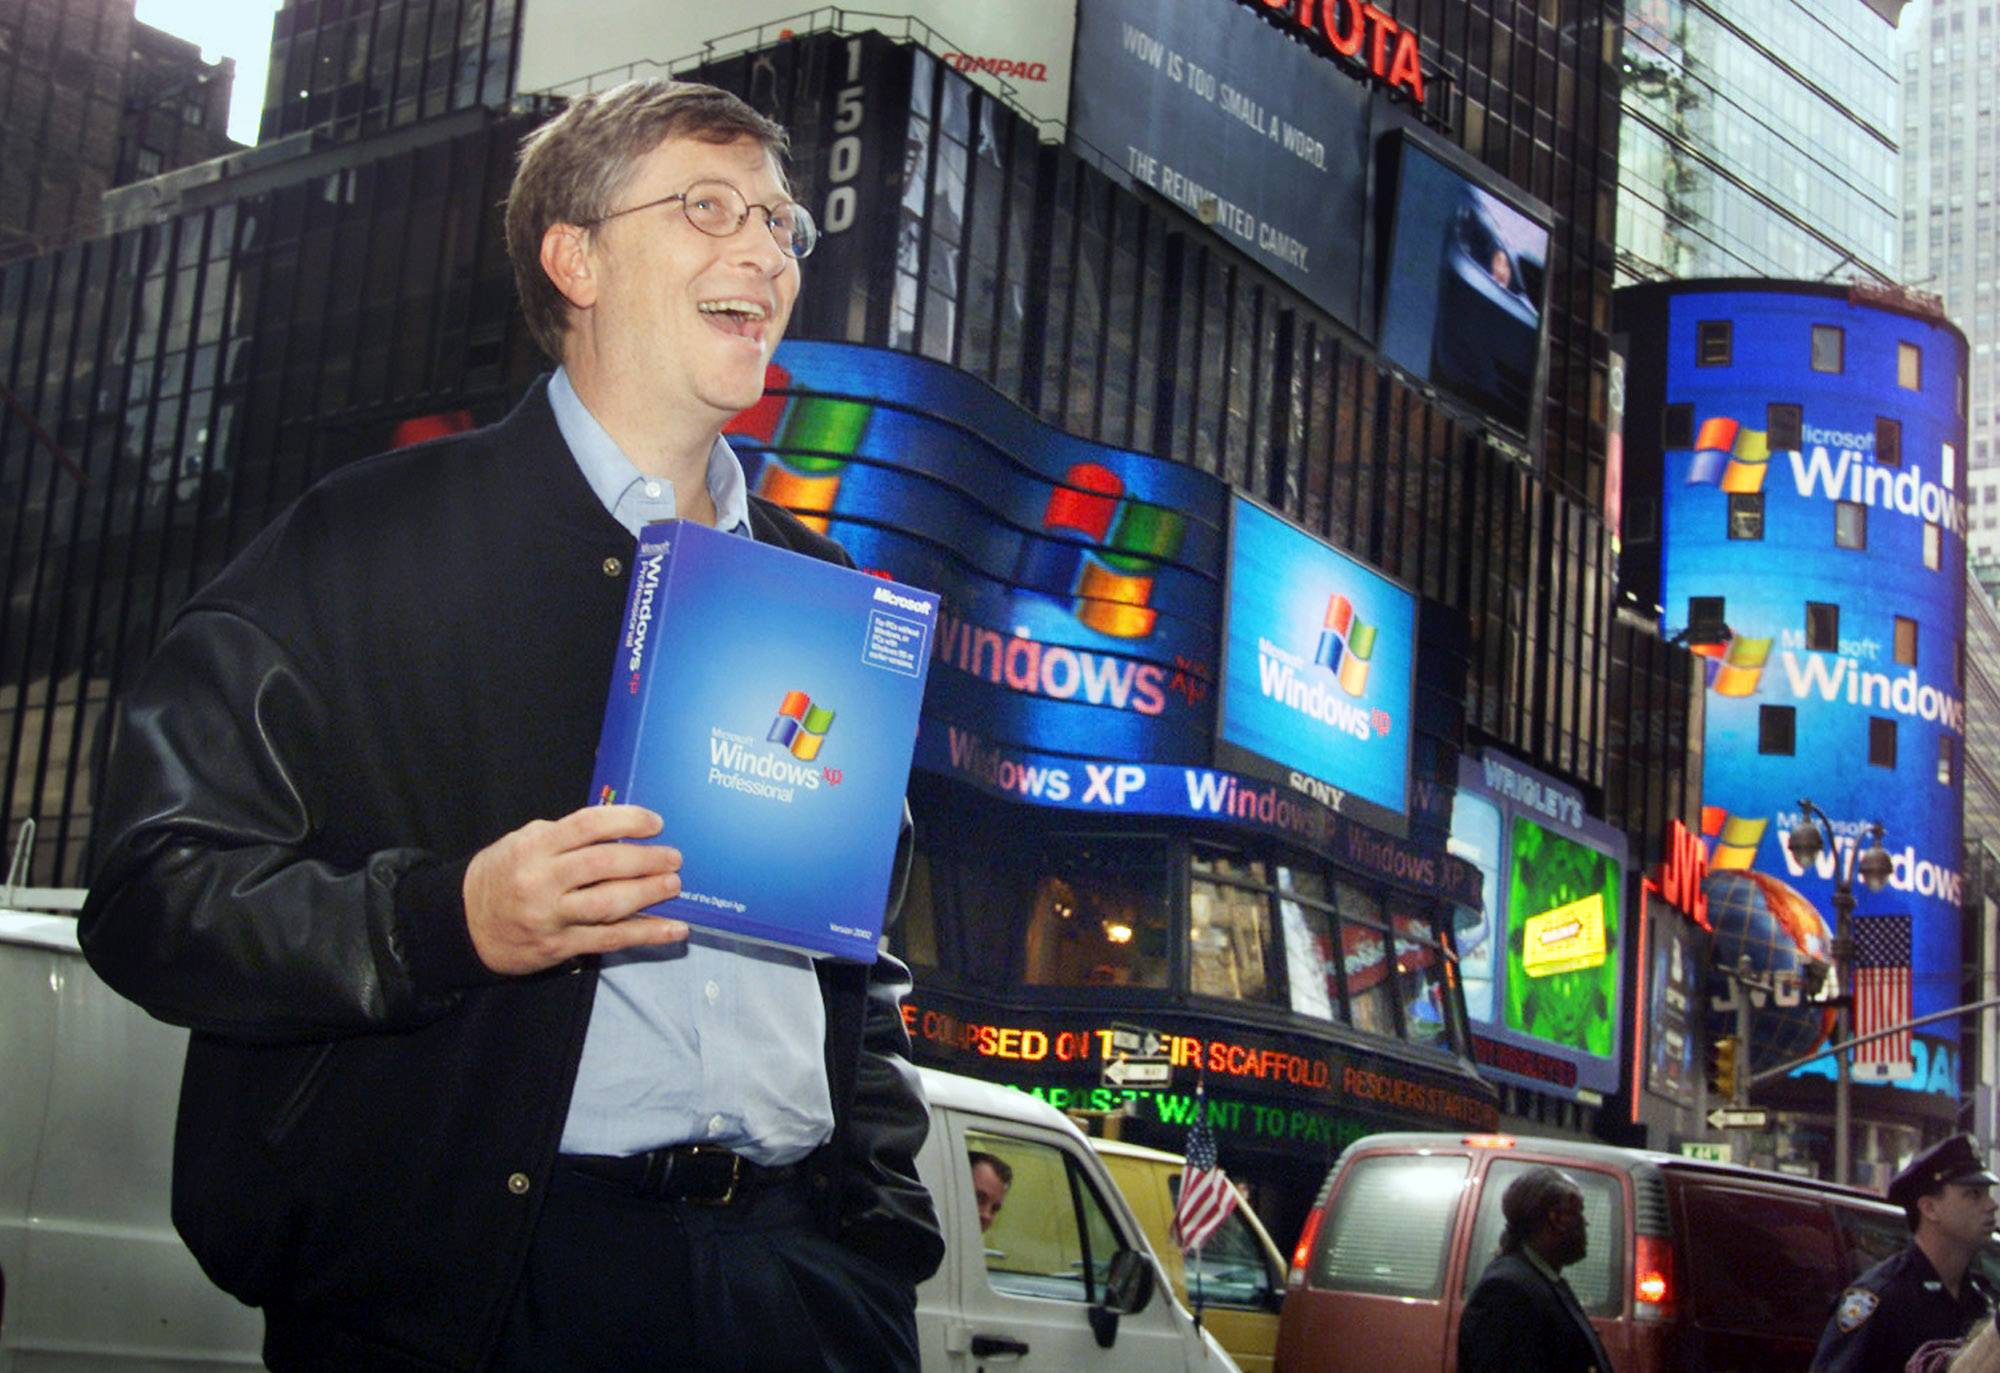 Microsoft chairman Bill Gates stands in New York's Times Square to promote the new Windows XP operating system on Oct. 25, 2001. On Tuesday, Microsoft will end support for its still popular version of Windows -- which is still used by an estimated 30 percent of businesses and consumers.